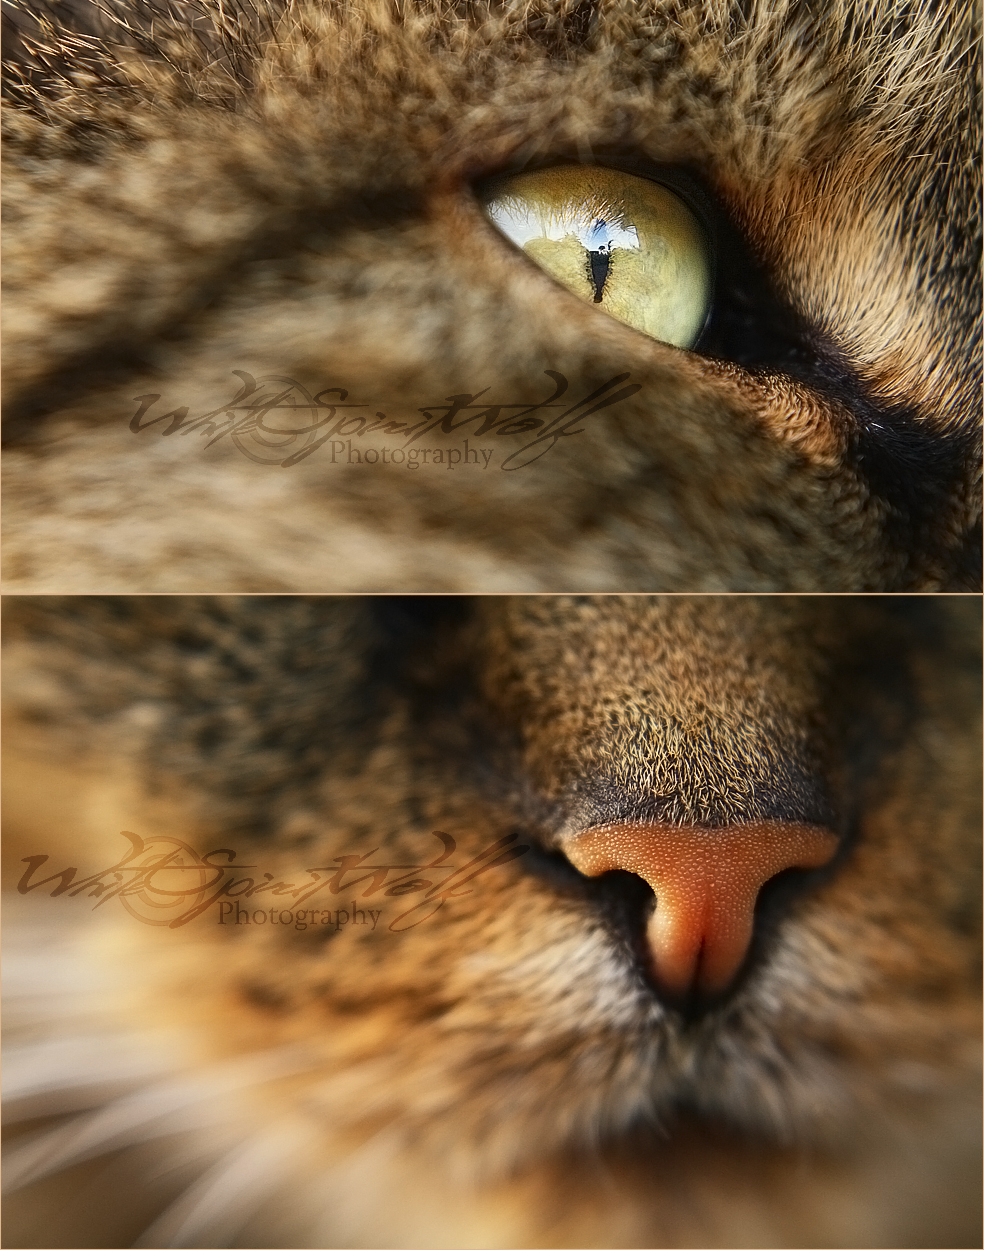 .: Eye 'n' Nose :. by WhiteSpiritWolf